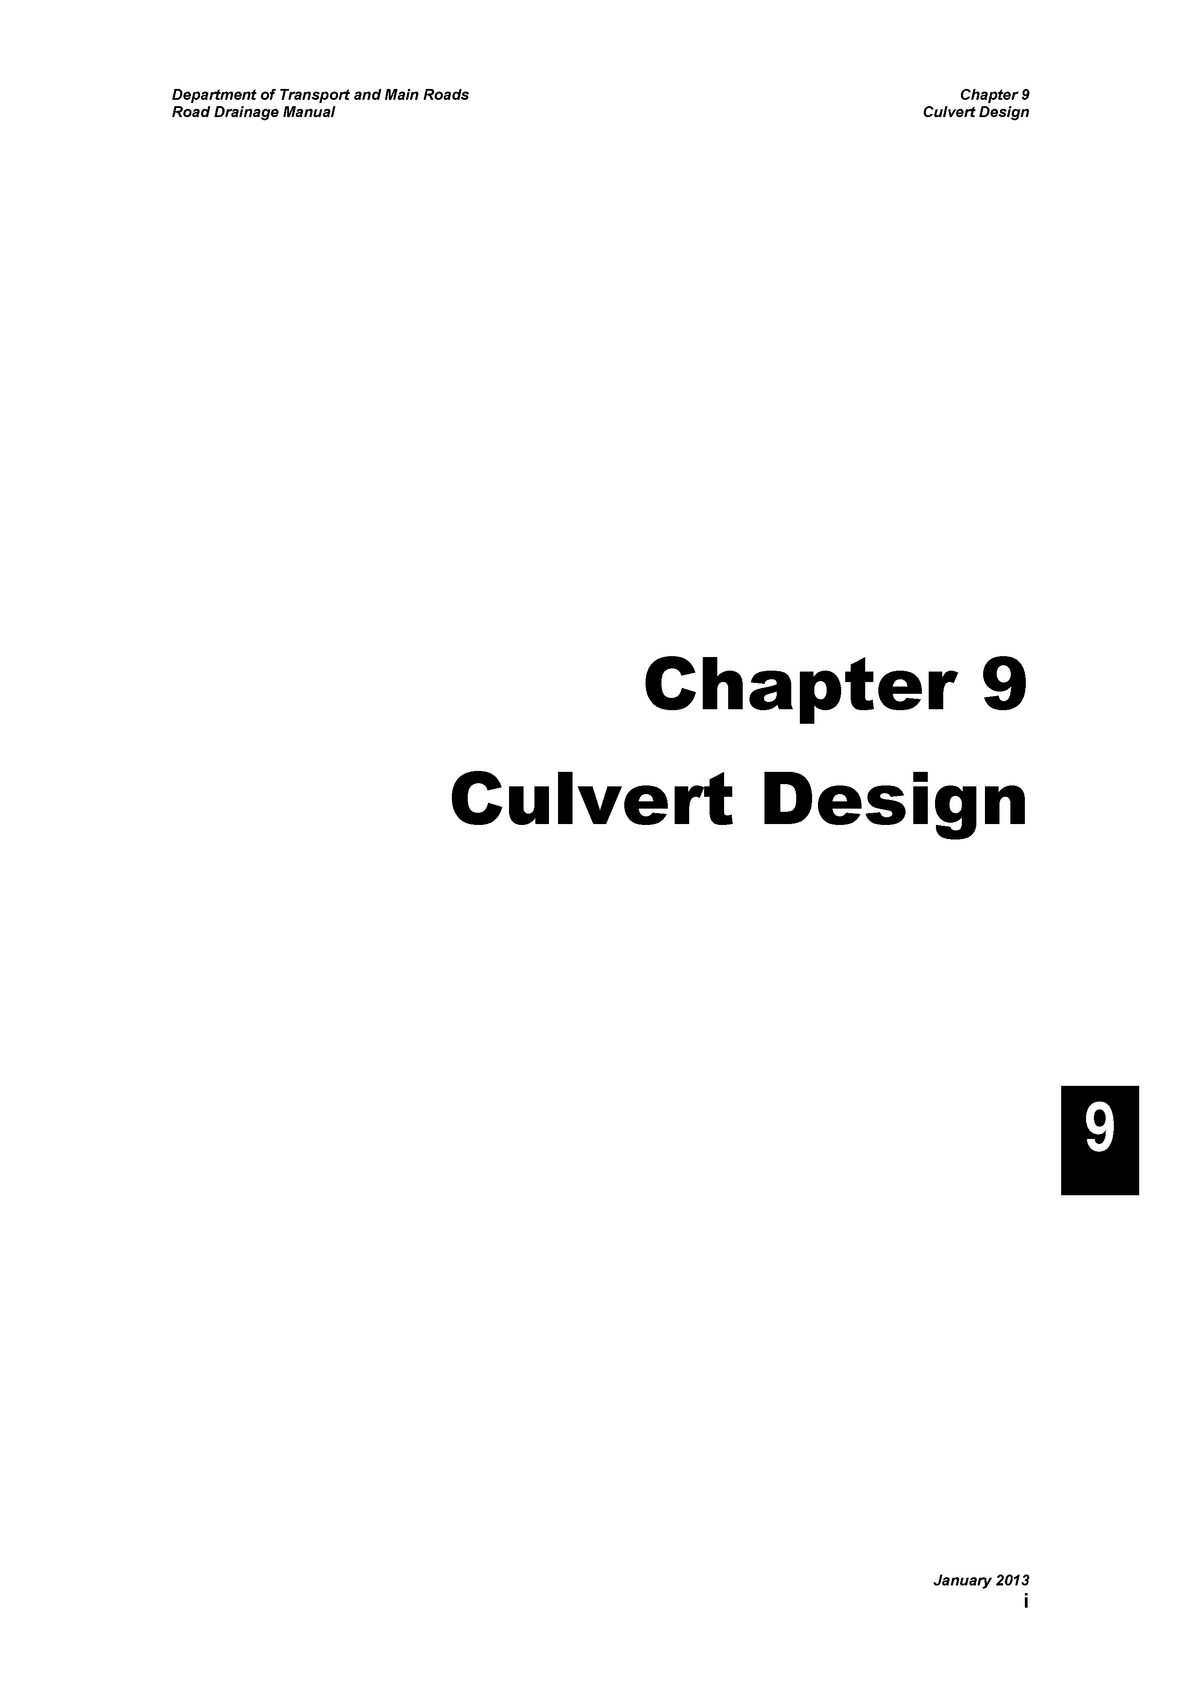 Manual Road Drainage Chapter 9 - 3113ENG: Civil Eng Design Project